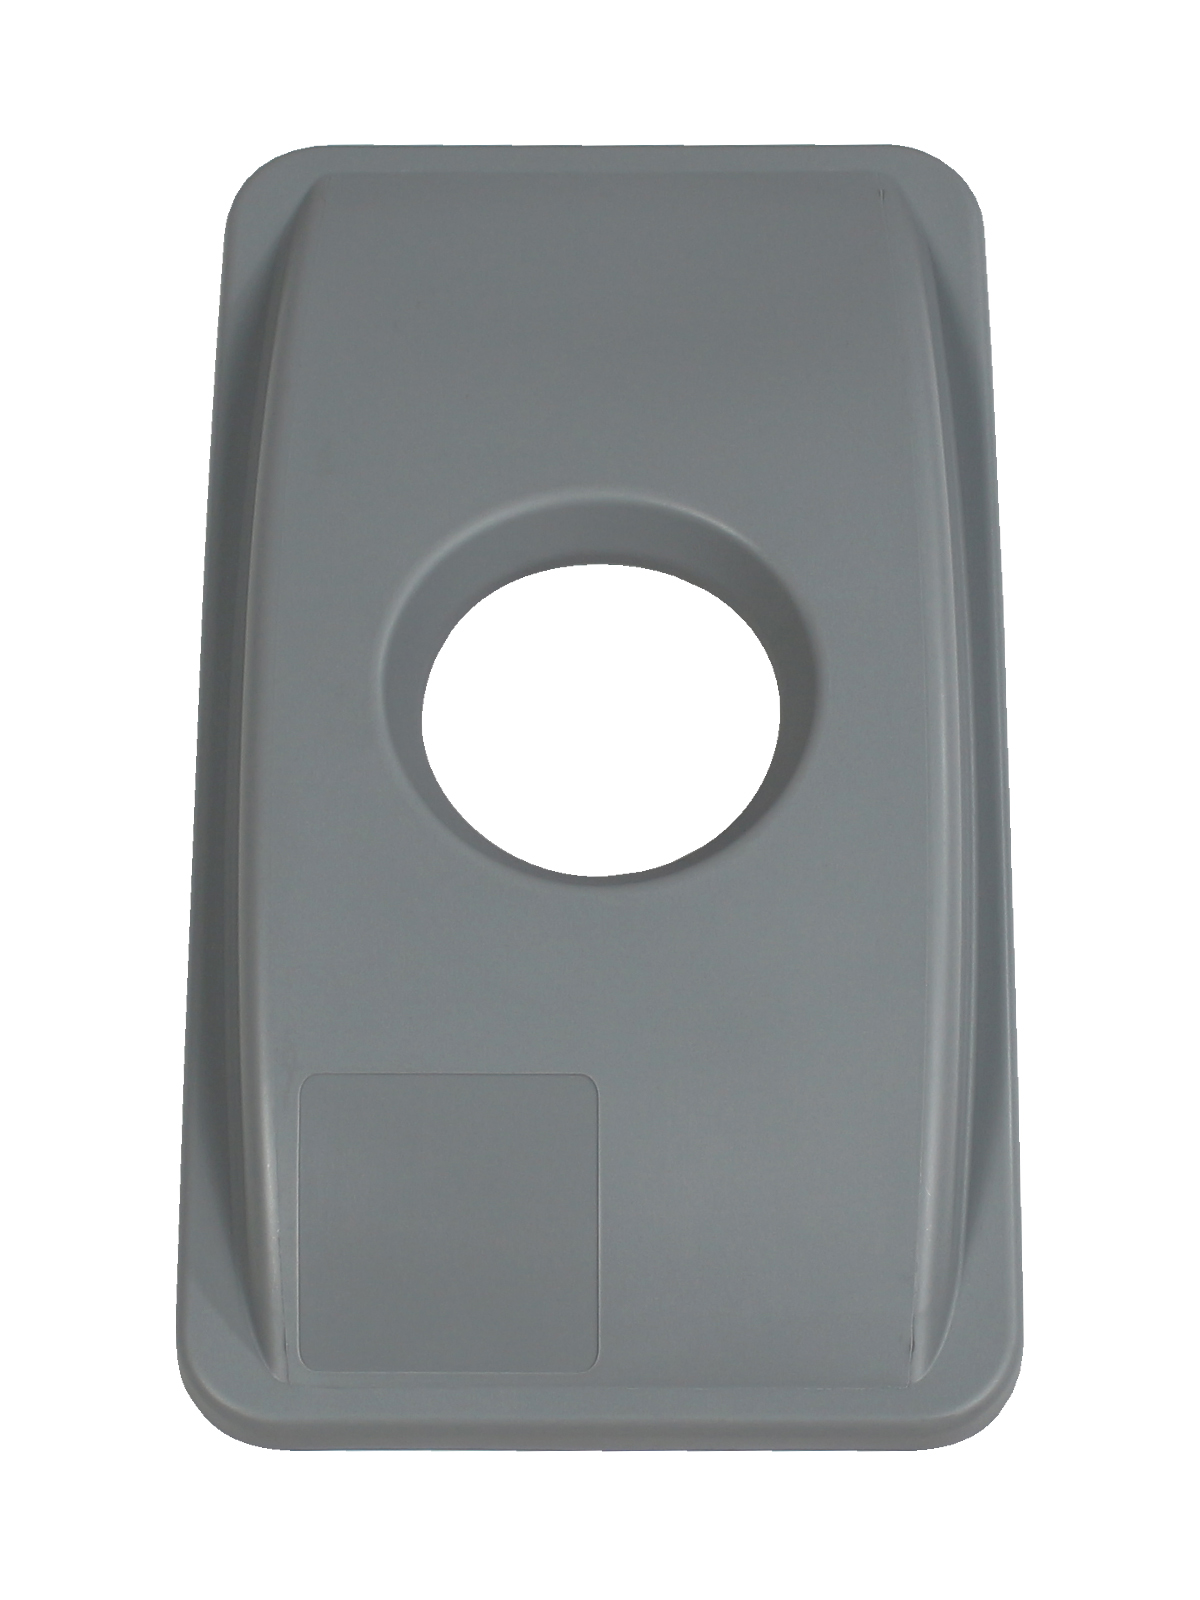 WASTE WATCHER - Single - Lid - Circle - Executive Grey